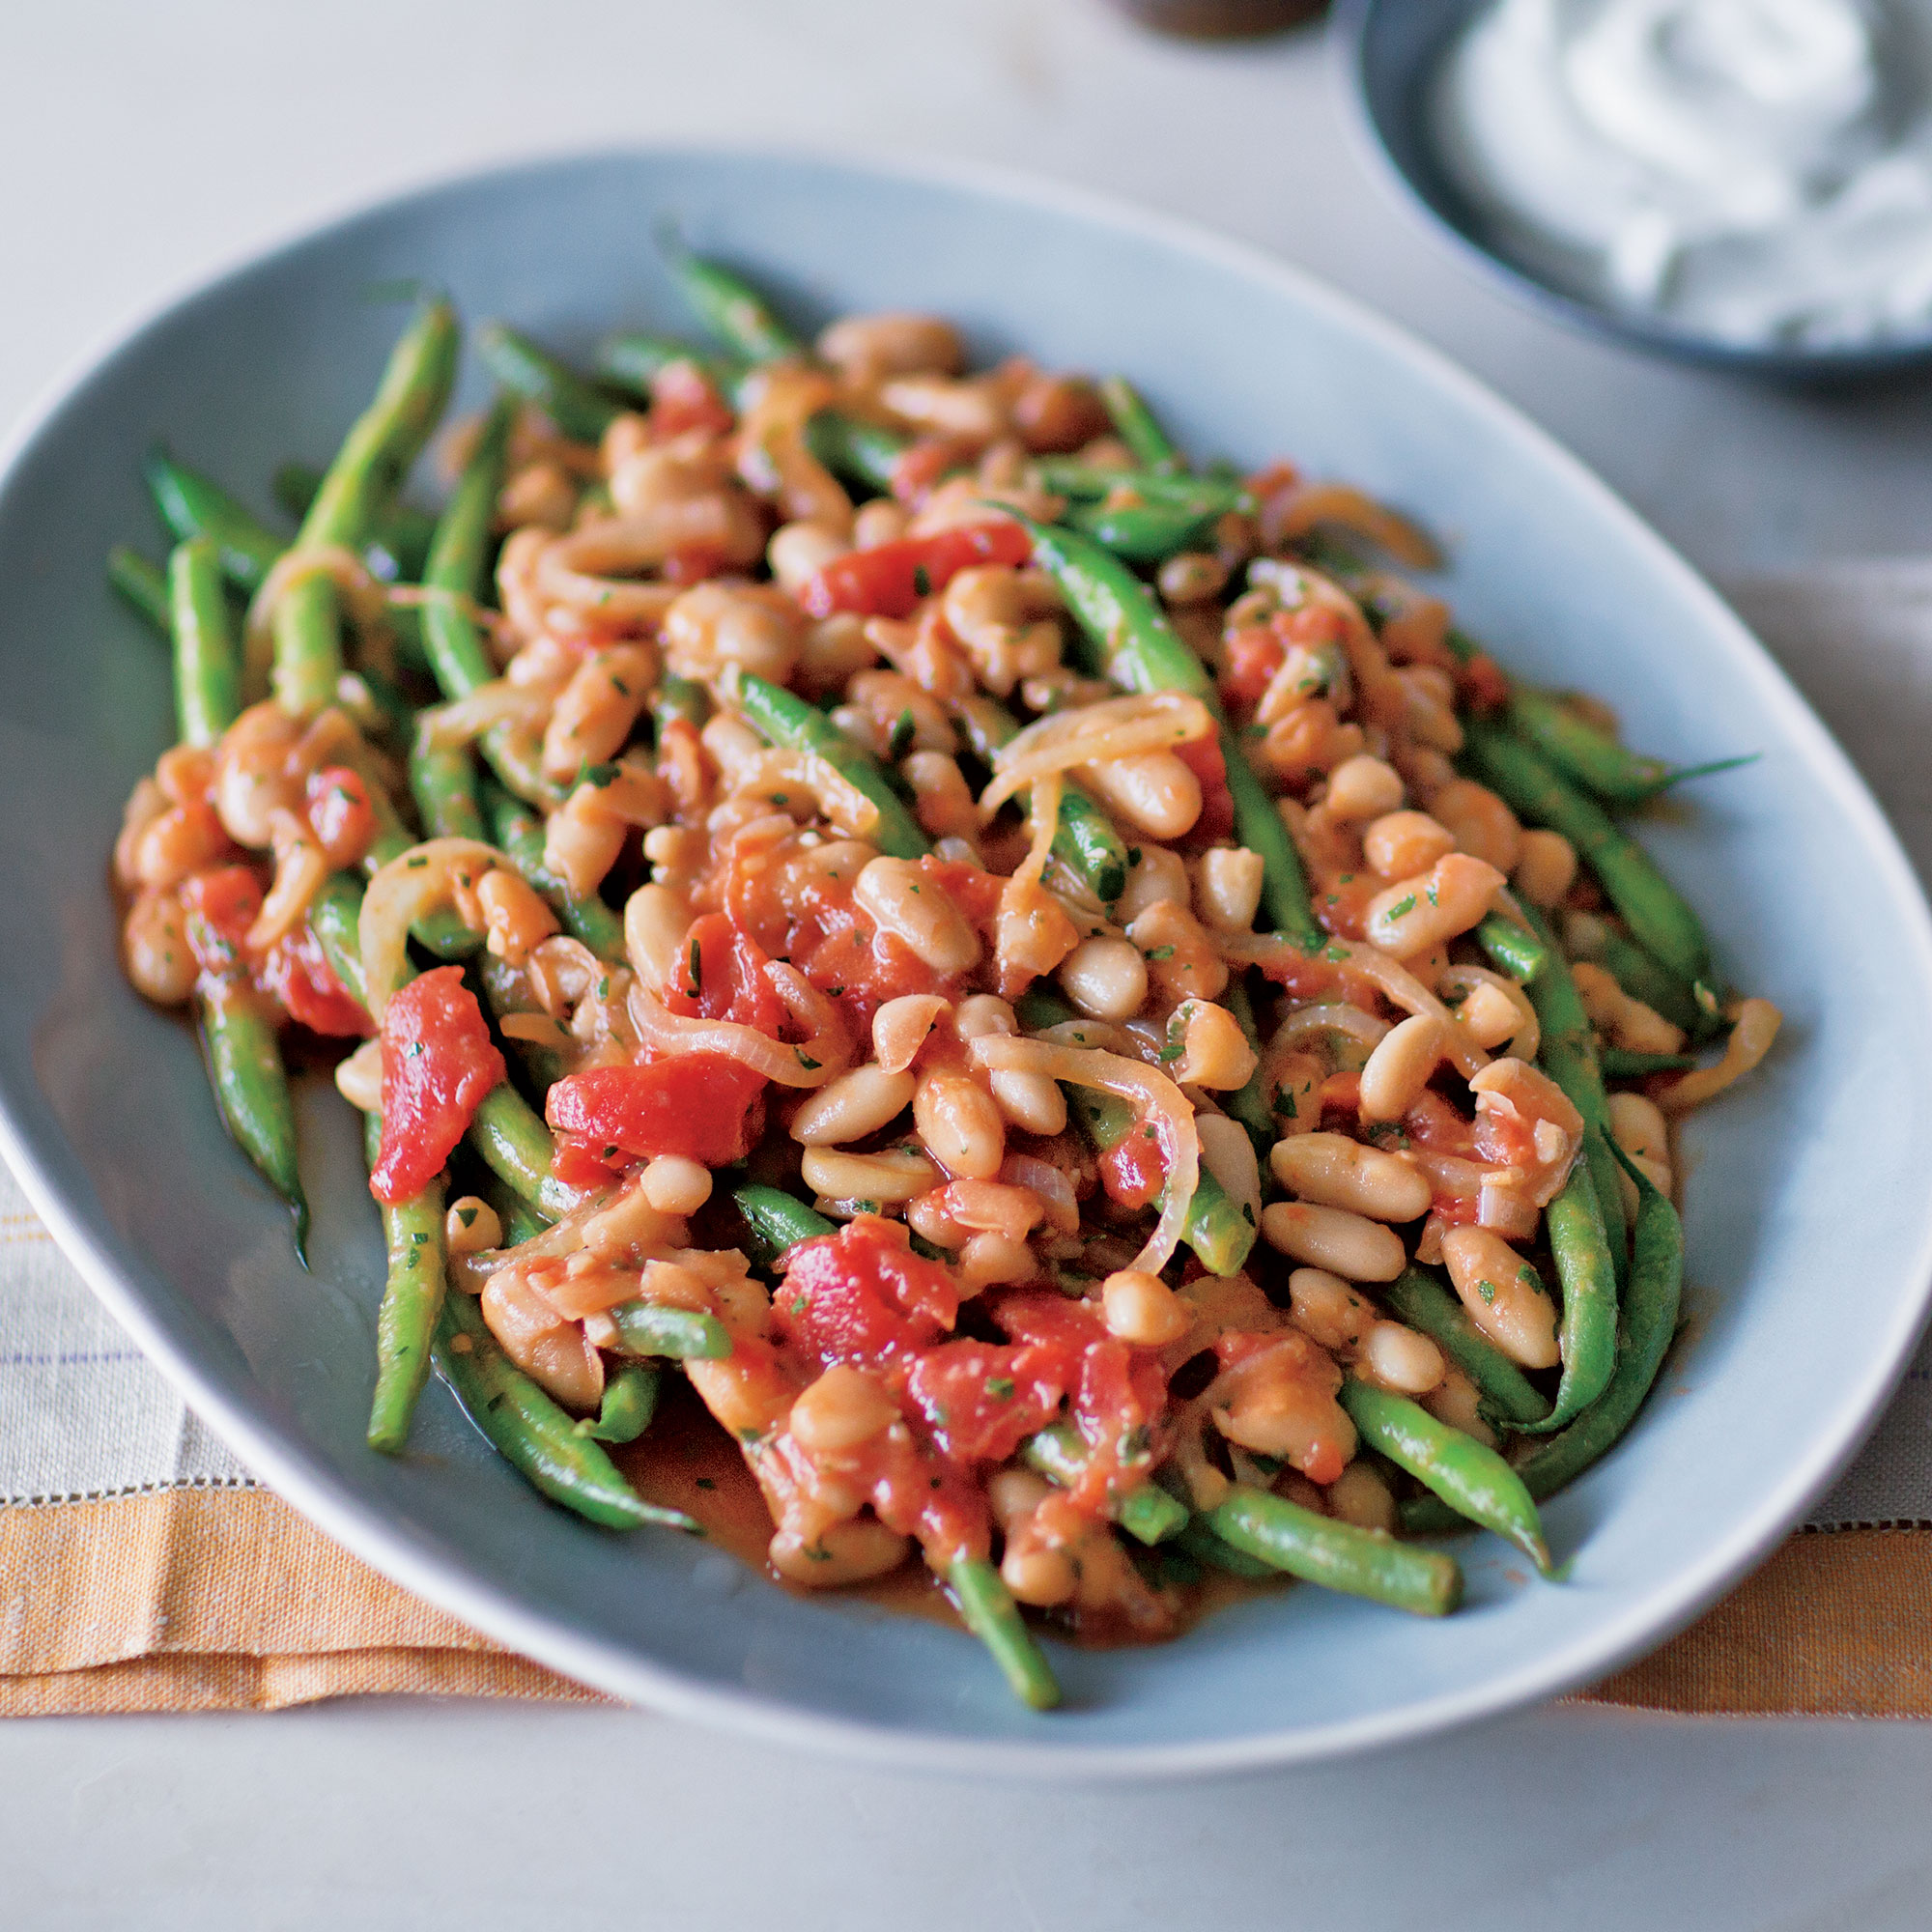 Mediterranean Braised Green and White Beans